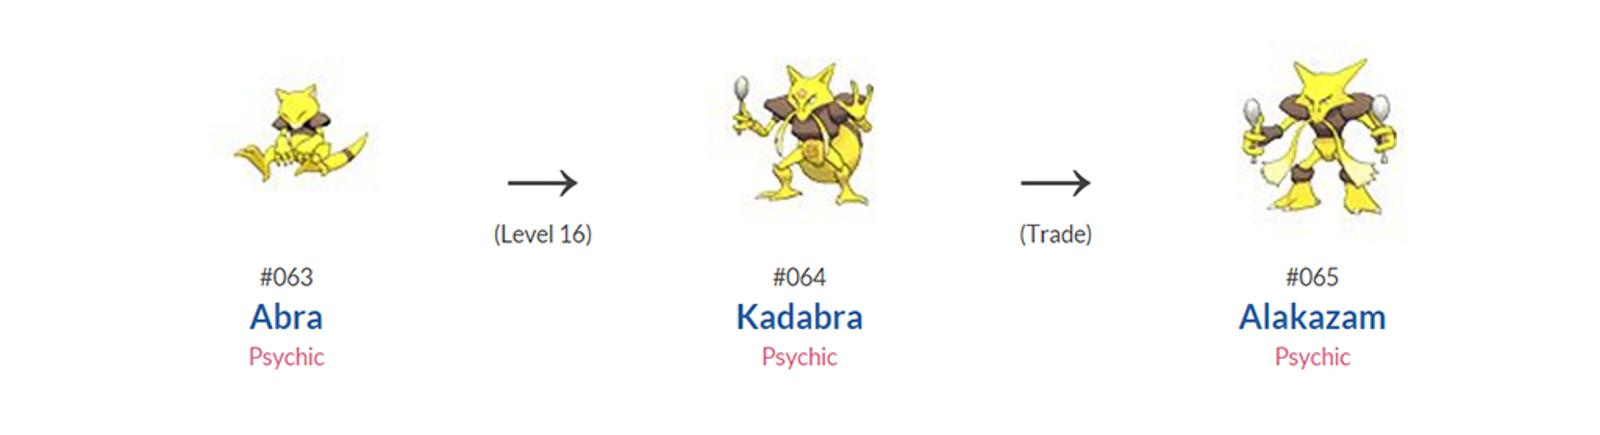 pokemon abra evolution...